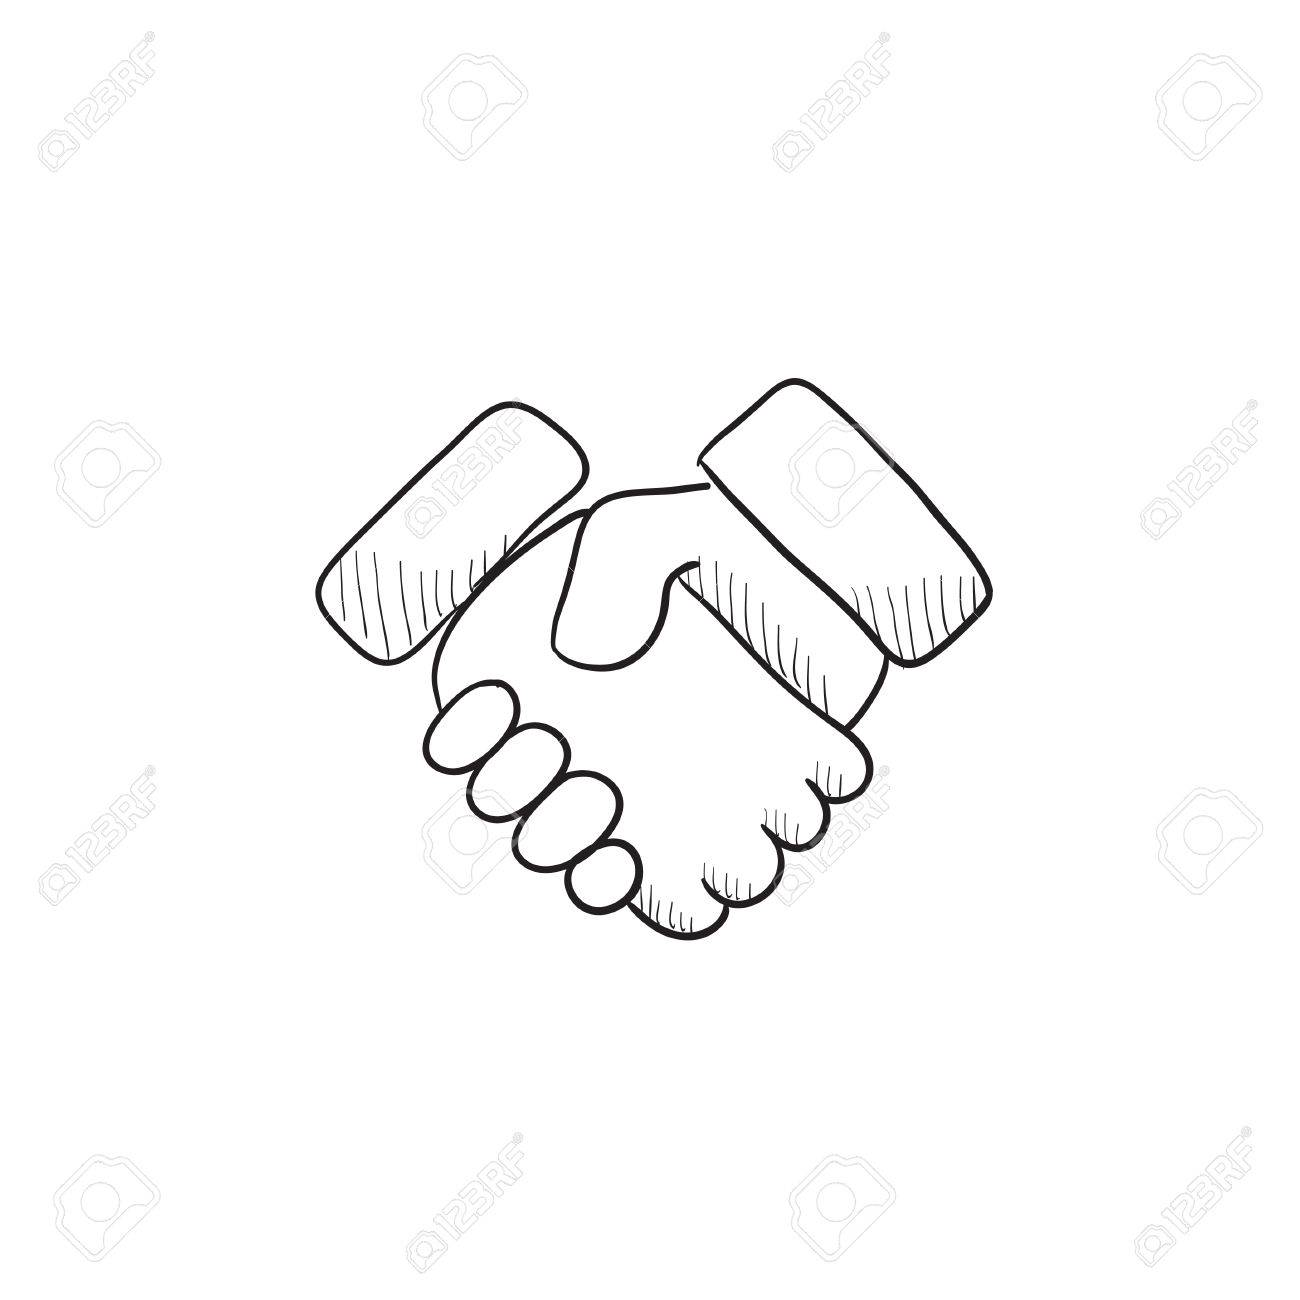 Handshake And Successful Real Estate Transaction Vector Sketch